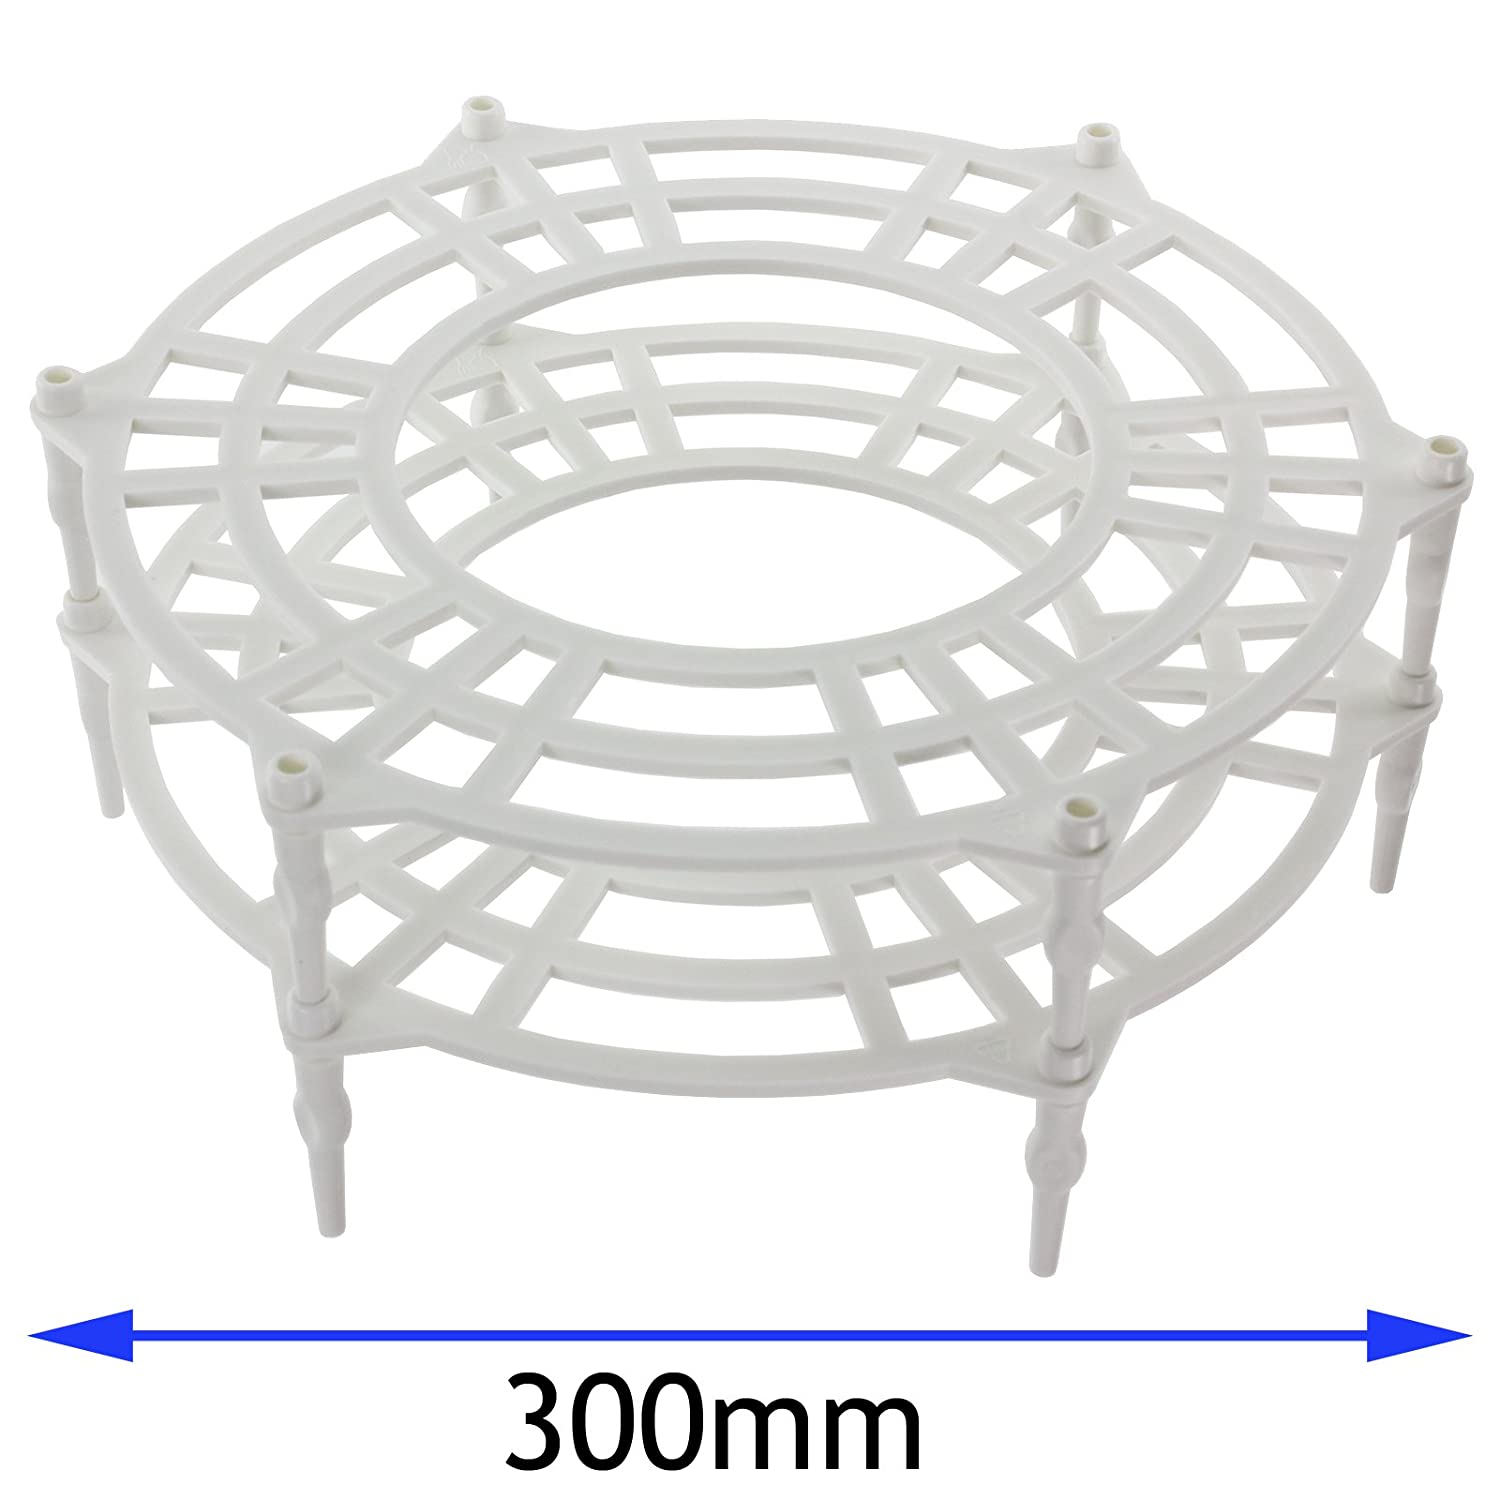 SPARES2GO 300mm Single + Double Tier Plate Stand Rack for Bosch Neff Siemens Microwave Ovens